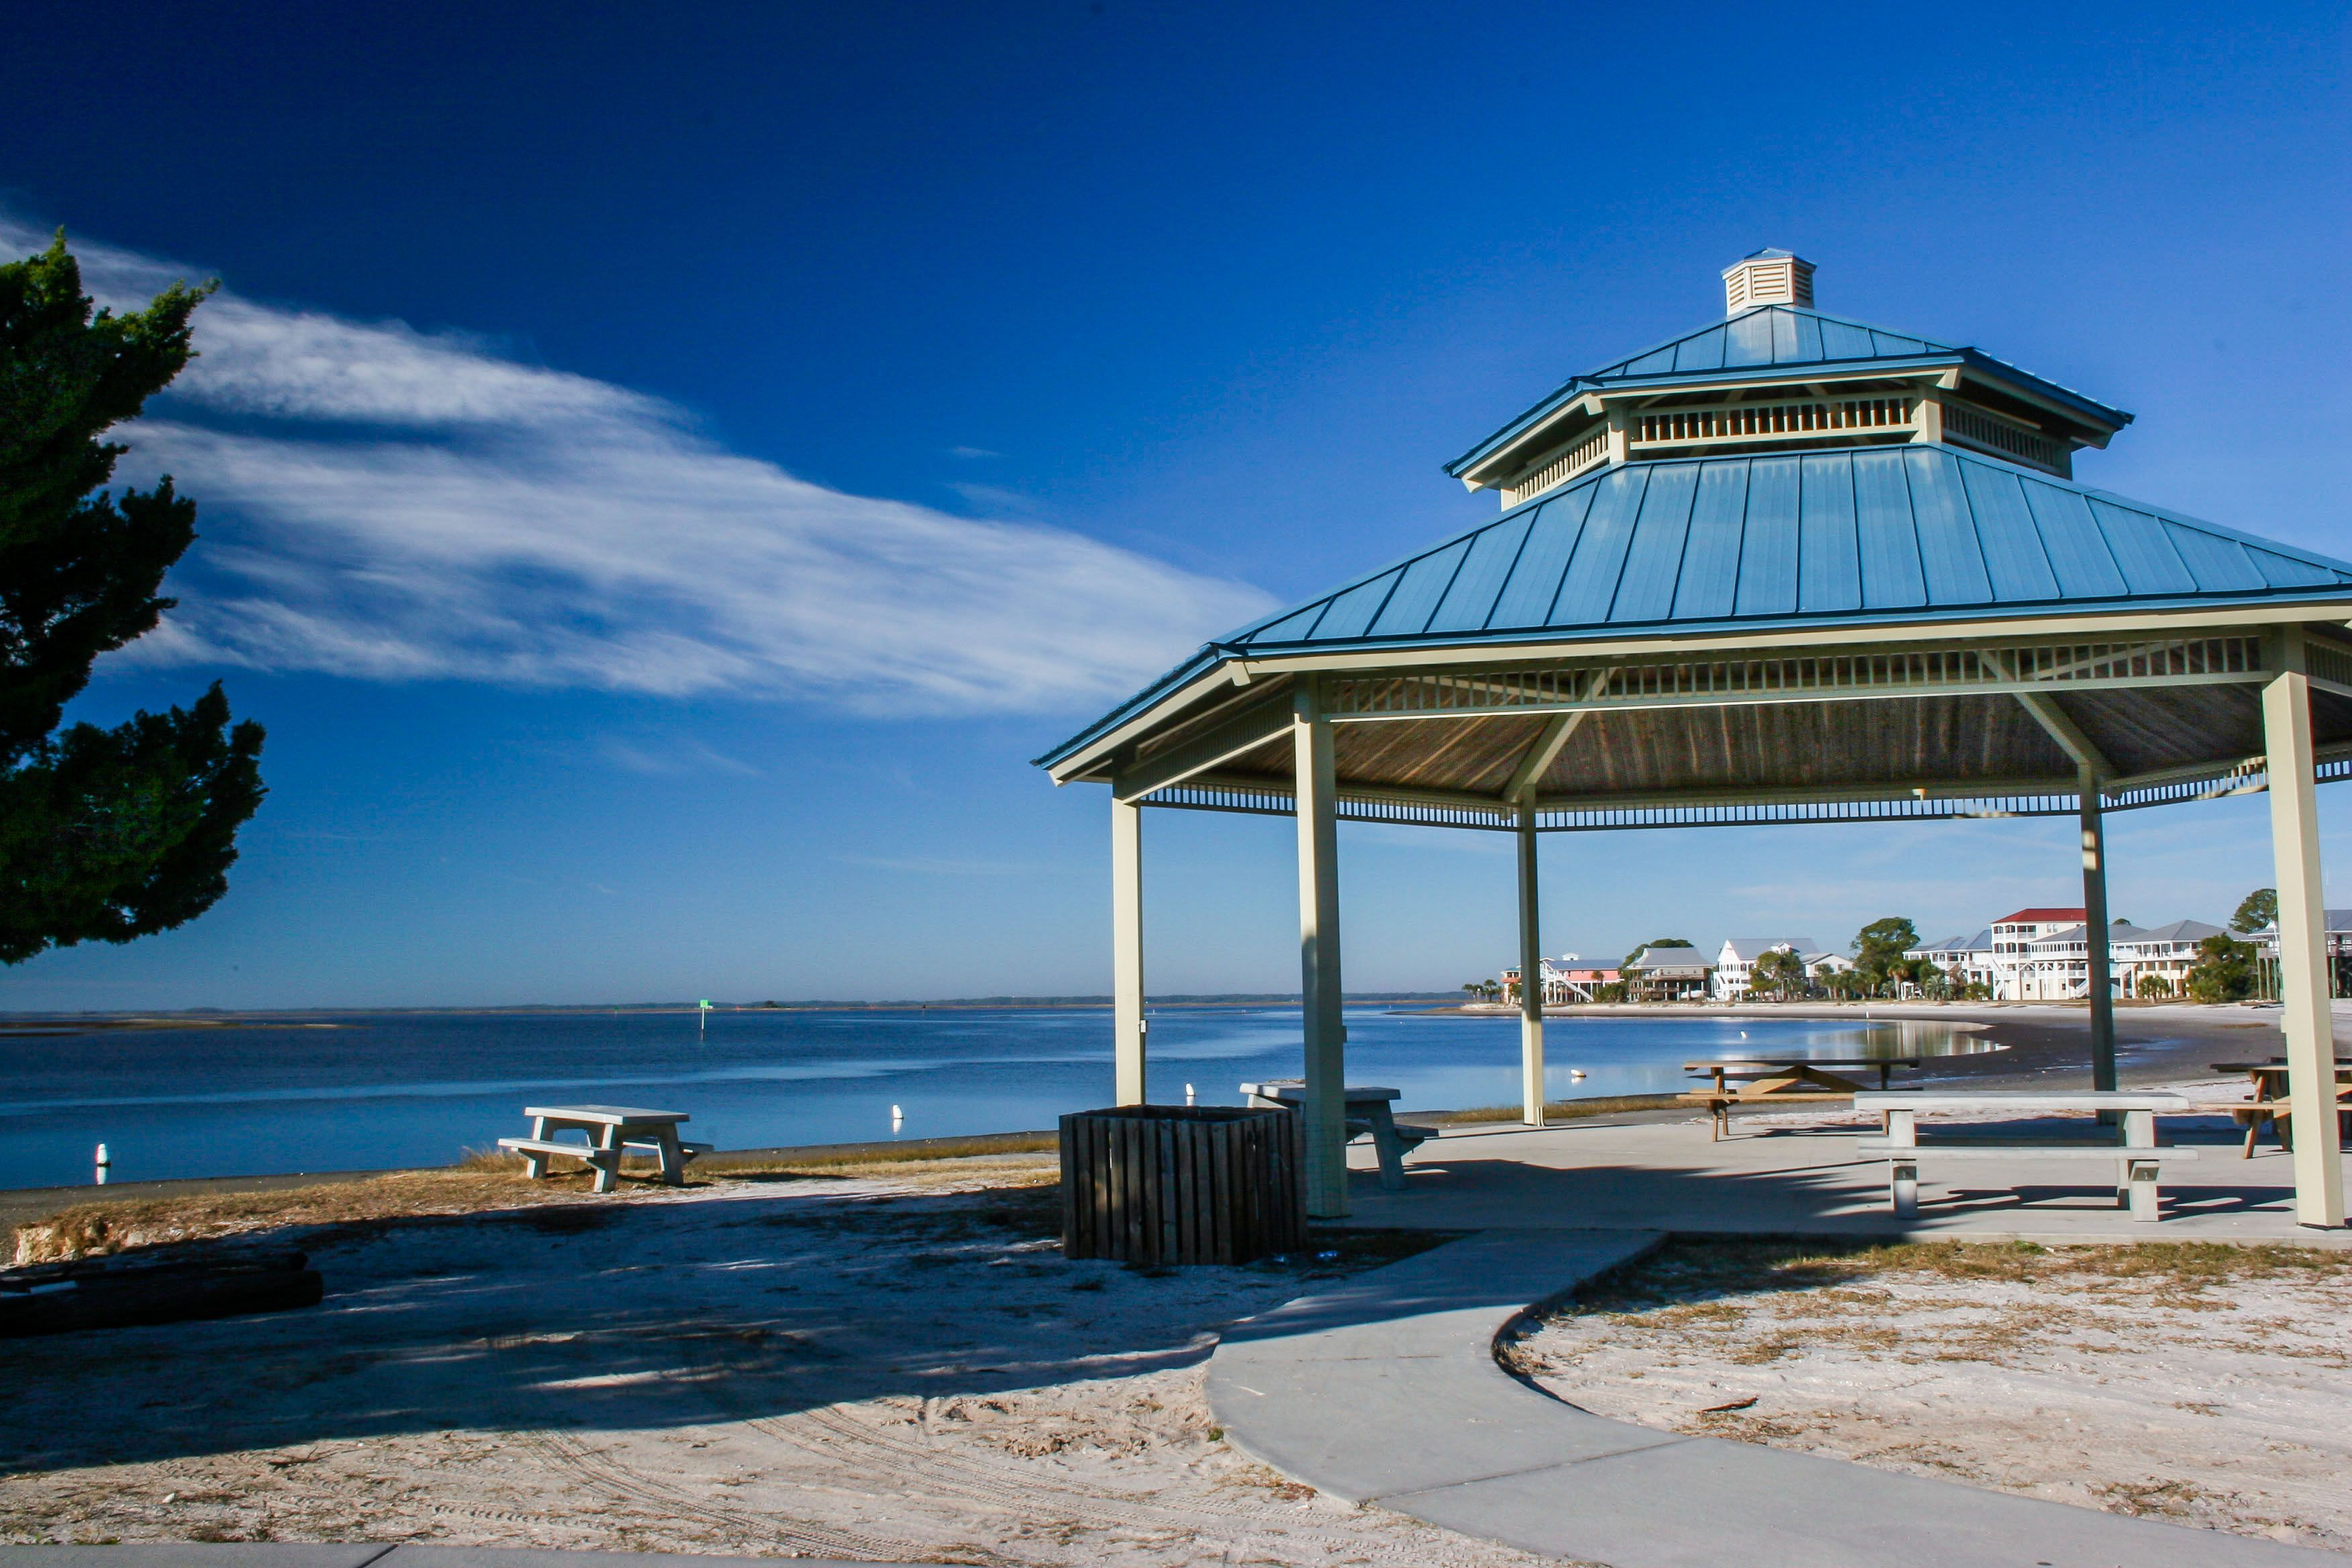 Shell Point Beach Is A Small Public Located On The Apalachee Bay In